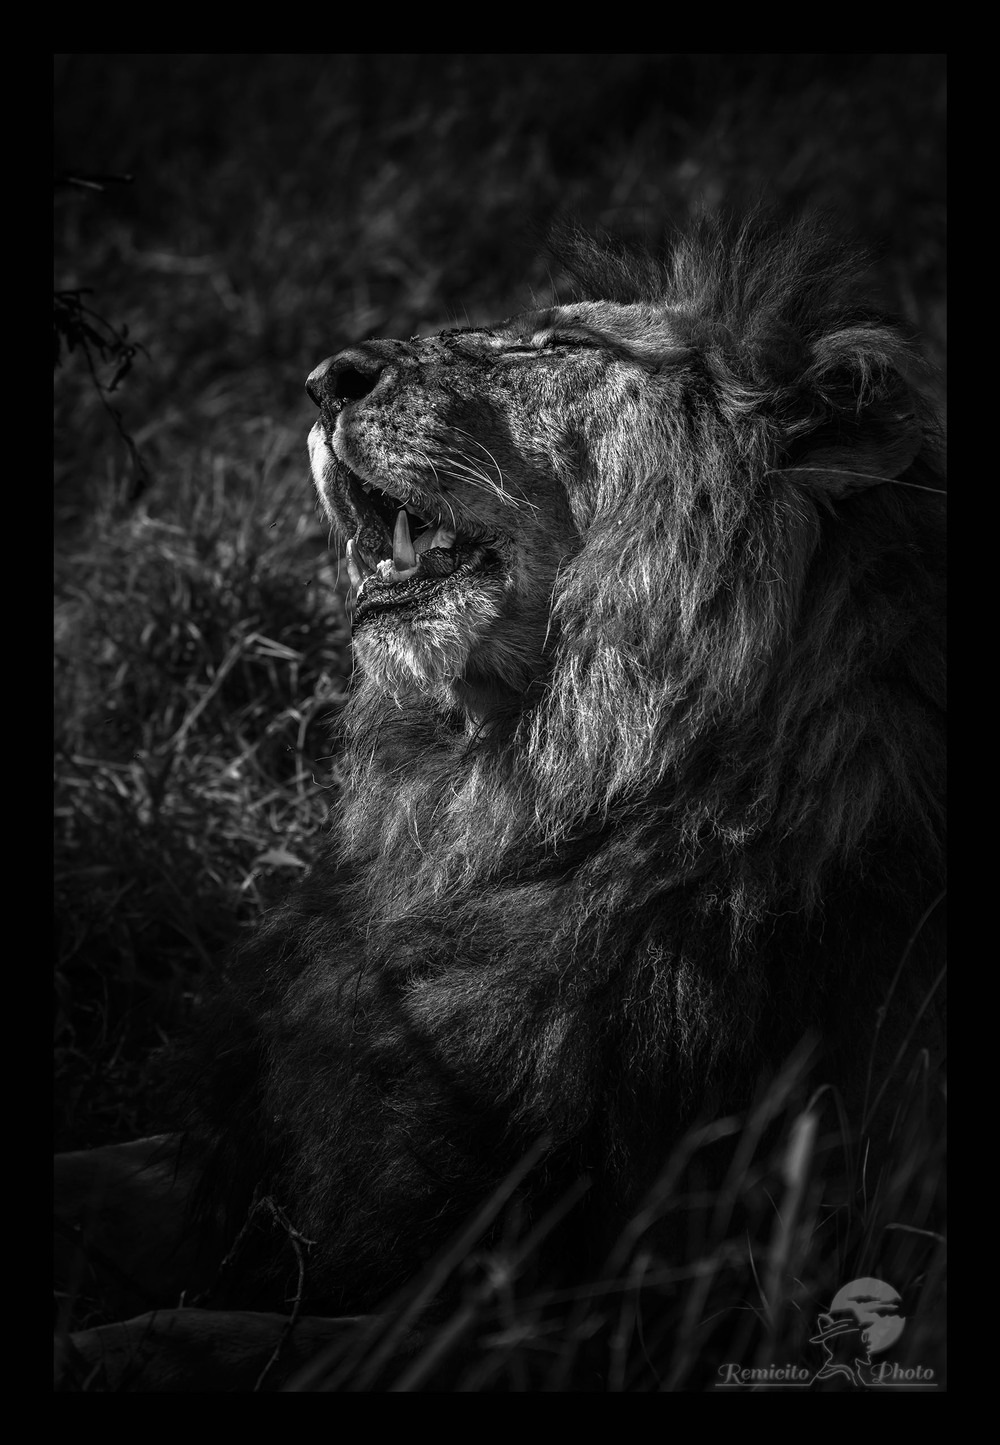 remicito photo 27-07-2016, July 27, 27th July, 27 Juillet, 27 de Julio, photo savane, photo afrique, photo safari afrique, photo safari kenya, photo safari tanzanie, photo afrique noir et blanc, photo noir et blanc kenya, photo noir et blanc tanzanie, photo noir et blanc Masai mara, photo serengeti, photo voyage afrique, photo voyage kenya, photo voyage tanzanie, photo savane afrique, photo savane kenya, Photo savane tanzanie, belle photo afrique, acheter photo afrique, tirage photo afrique, acheter photo kenya, acheter photo tanzanie, tirage photo safari, belle photo savane, offrir photo afrique, acheter photo lion, offrir photo lion, photo noir et blanc paysage,  Lion Africa, hunting Africa, black and white africa, black and white africa photo, kenya photograph, kenya savanna photo, tanzania photograph, kenya savanna photographs, tanzania savanna Photo, best africa shot, best africa photo, best lion shot, best lion photo, best lion photograph, buy photo africa, africa gift photo, lion gift photo, buy lion photo, buy africa Lion photo, black and white photo, black and white photography,  Foto Leon, foto africa regalo, comprar foto africa, offrecer foto africa, africa maravilla, africa linda, foto negro y blanco Leon, foto kenya, foto tanzania, leon africa, leon sabana, leon Kenya, leon Tanzania, offrecer foto negro y blanco,  photo décoration mur, photo décoration chambre, photo décoration toilettes, cadeau décoration, idée cadeau décoration, idée cadeau pour lui, idée cadeau pour elle, idée cadeau photo mariage, idée cadeau photo nouvel appart, idée cadeau photo nouvel appartement, idée cadeau photo nouvelle maison, idée cadeau photo décoration, idée cadeau originale, idée cadeau fête des pères, idée cadeau fête des mères, idée cadeau naissance, idée cadeau anniversaire, idée cadeau anniversaire homme, idée cadeau anniversaire femme, idée cadeau noël, idée cadeau noel, idée cadeau grand-mère, idée cadeau grand-père, idée cadeau grands-parents, idée cadeau parents, idée cadeau enfants, idée cadeau adulte,  jolie photo,  offrir photo, offrir belle photo, offrir photo couleur, offrir photo originale, offrir photo magnifique, offrir photo pour décorer, offrir photo décoration, beautiful color photo, buy photo landscape, gift idea, present idea, present idea father, present idea mother, present idea parents, mother gift idea, father gift idea, parents gift idea, grand parents gift idea, beautiful photo, beautiful photograph, nice photograph, idea regalo padre, idea regalo madre, idea regalo boda, idea regalo cumpleaños, idea regalo cumpleanos, foto regalo, comprar foto decoracion, comprar foto linda, offrecer foto linda